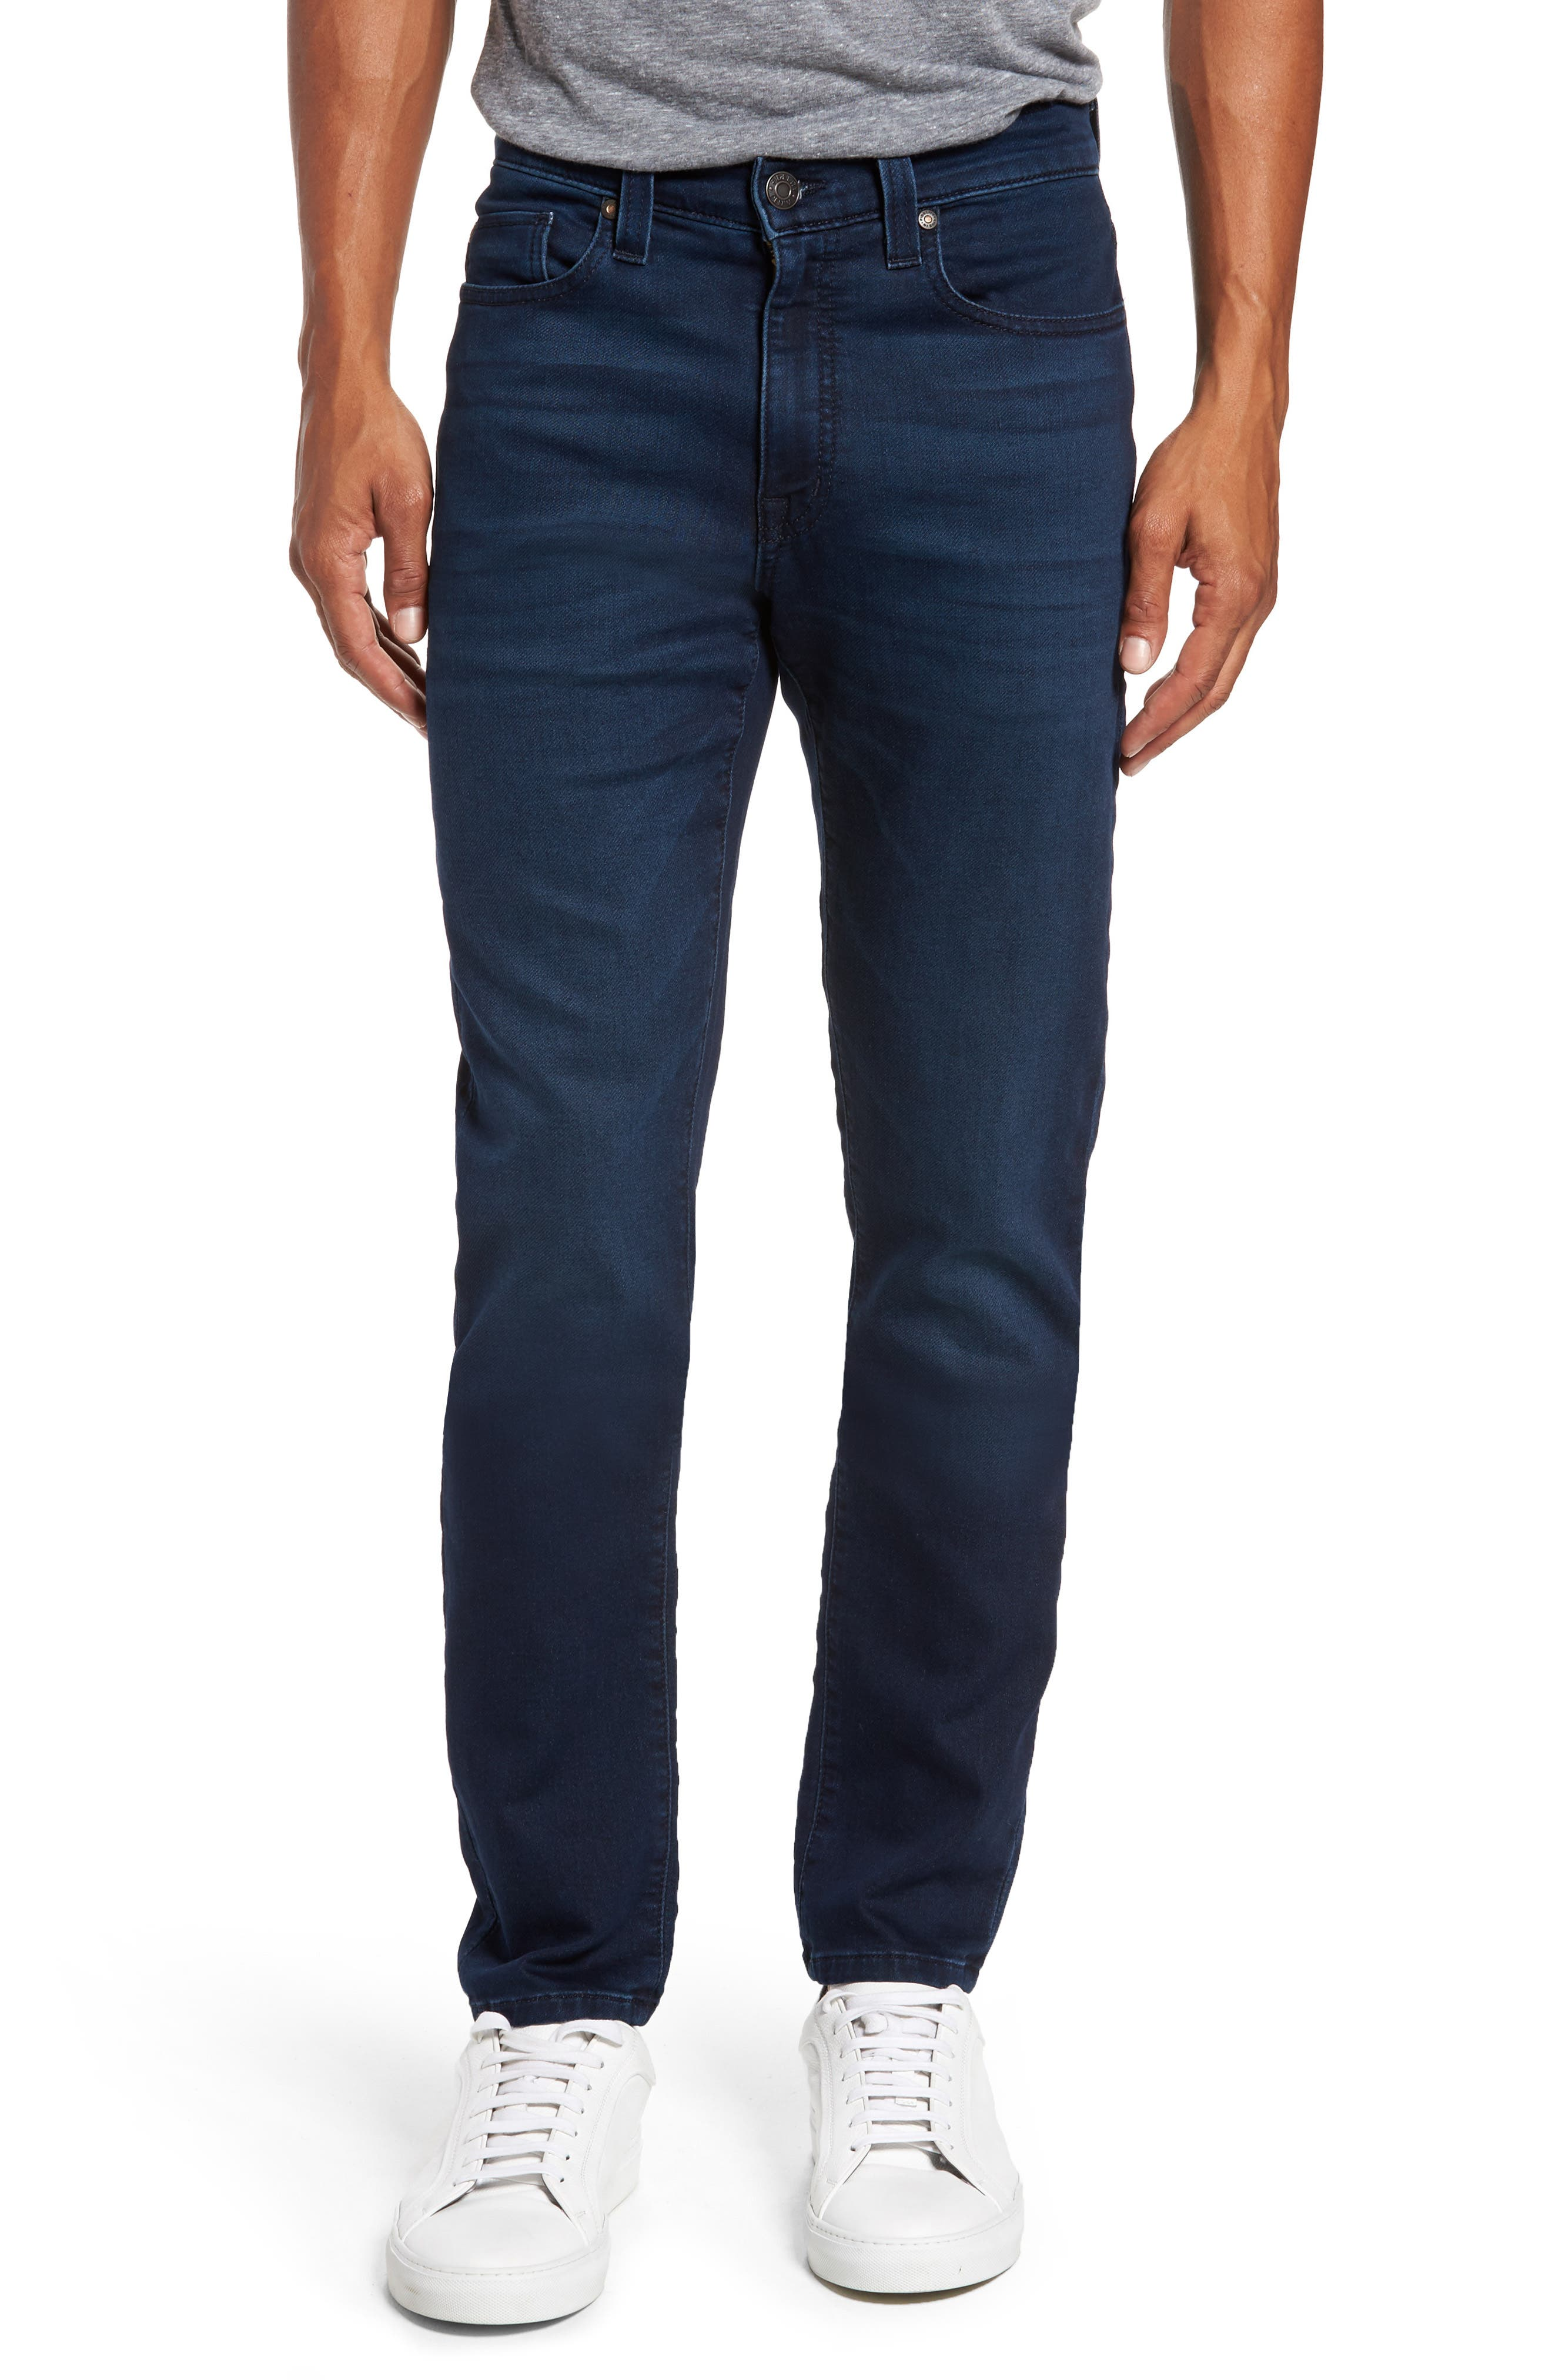 Torino Slim Fit Jeans,                         Main,                         color, 400